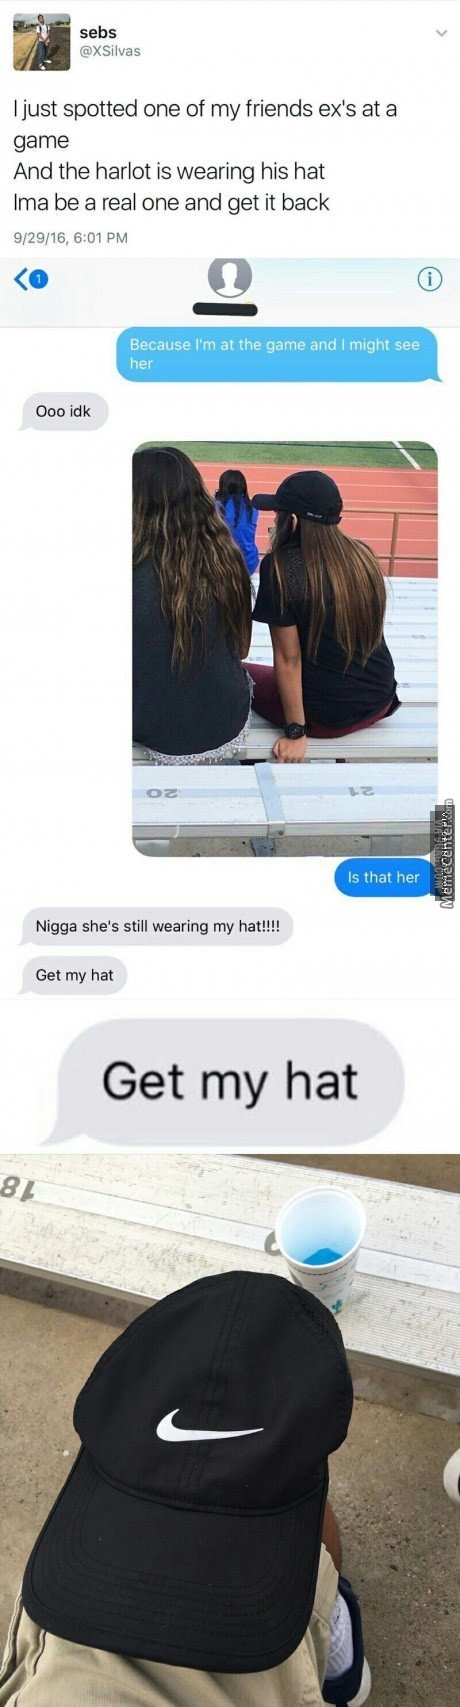 She Probably Just Wanted The Hat In The First Place